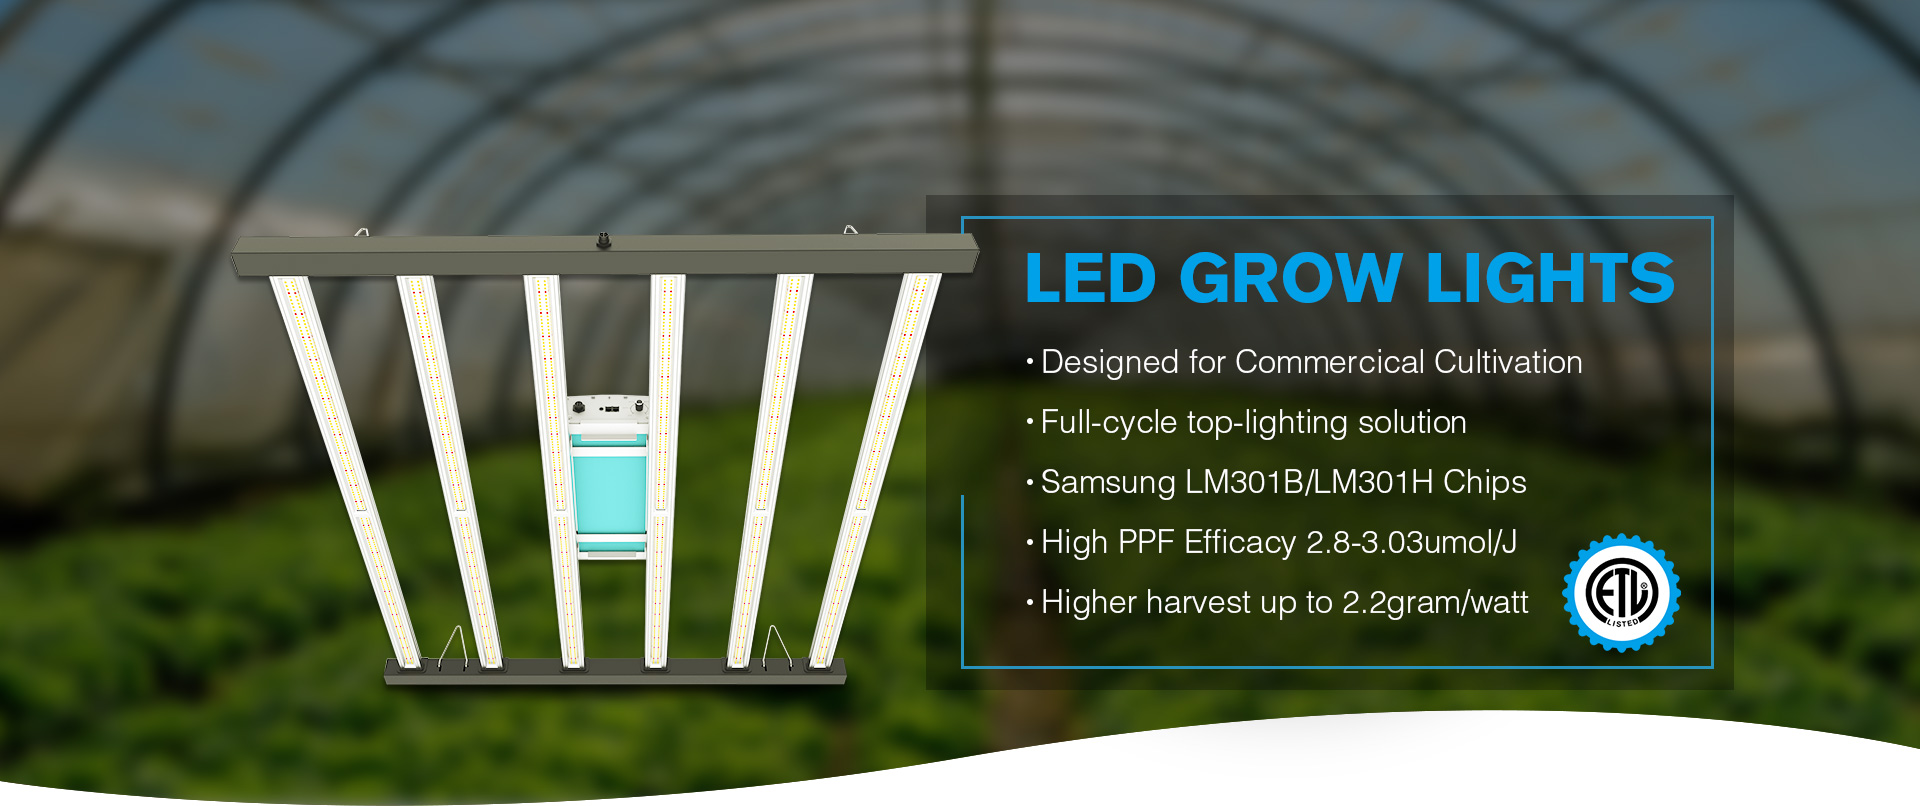 Flodable Samsung SPyder LED Grow Lights